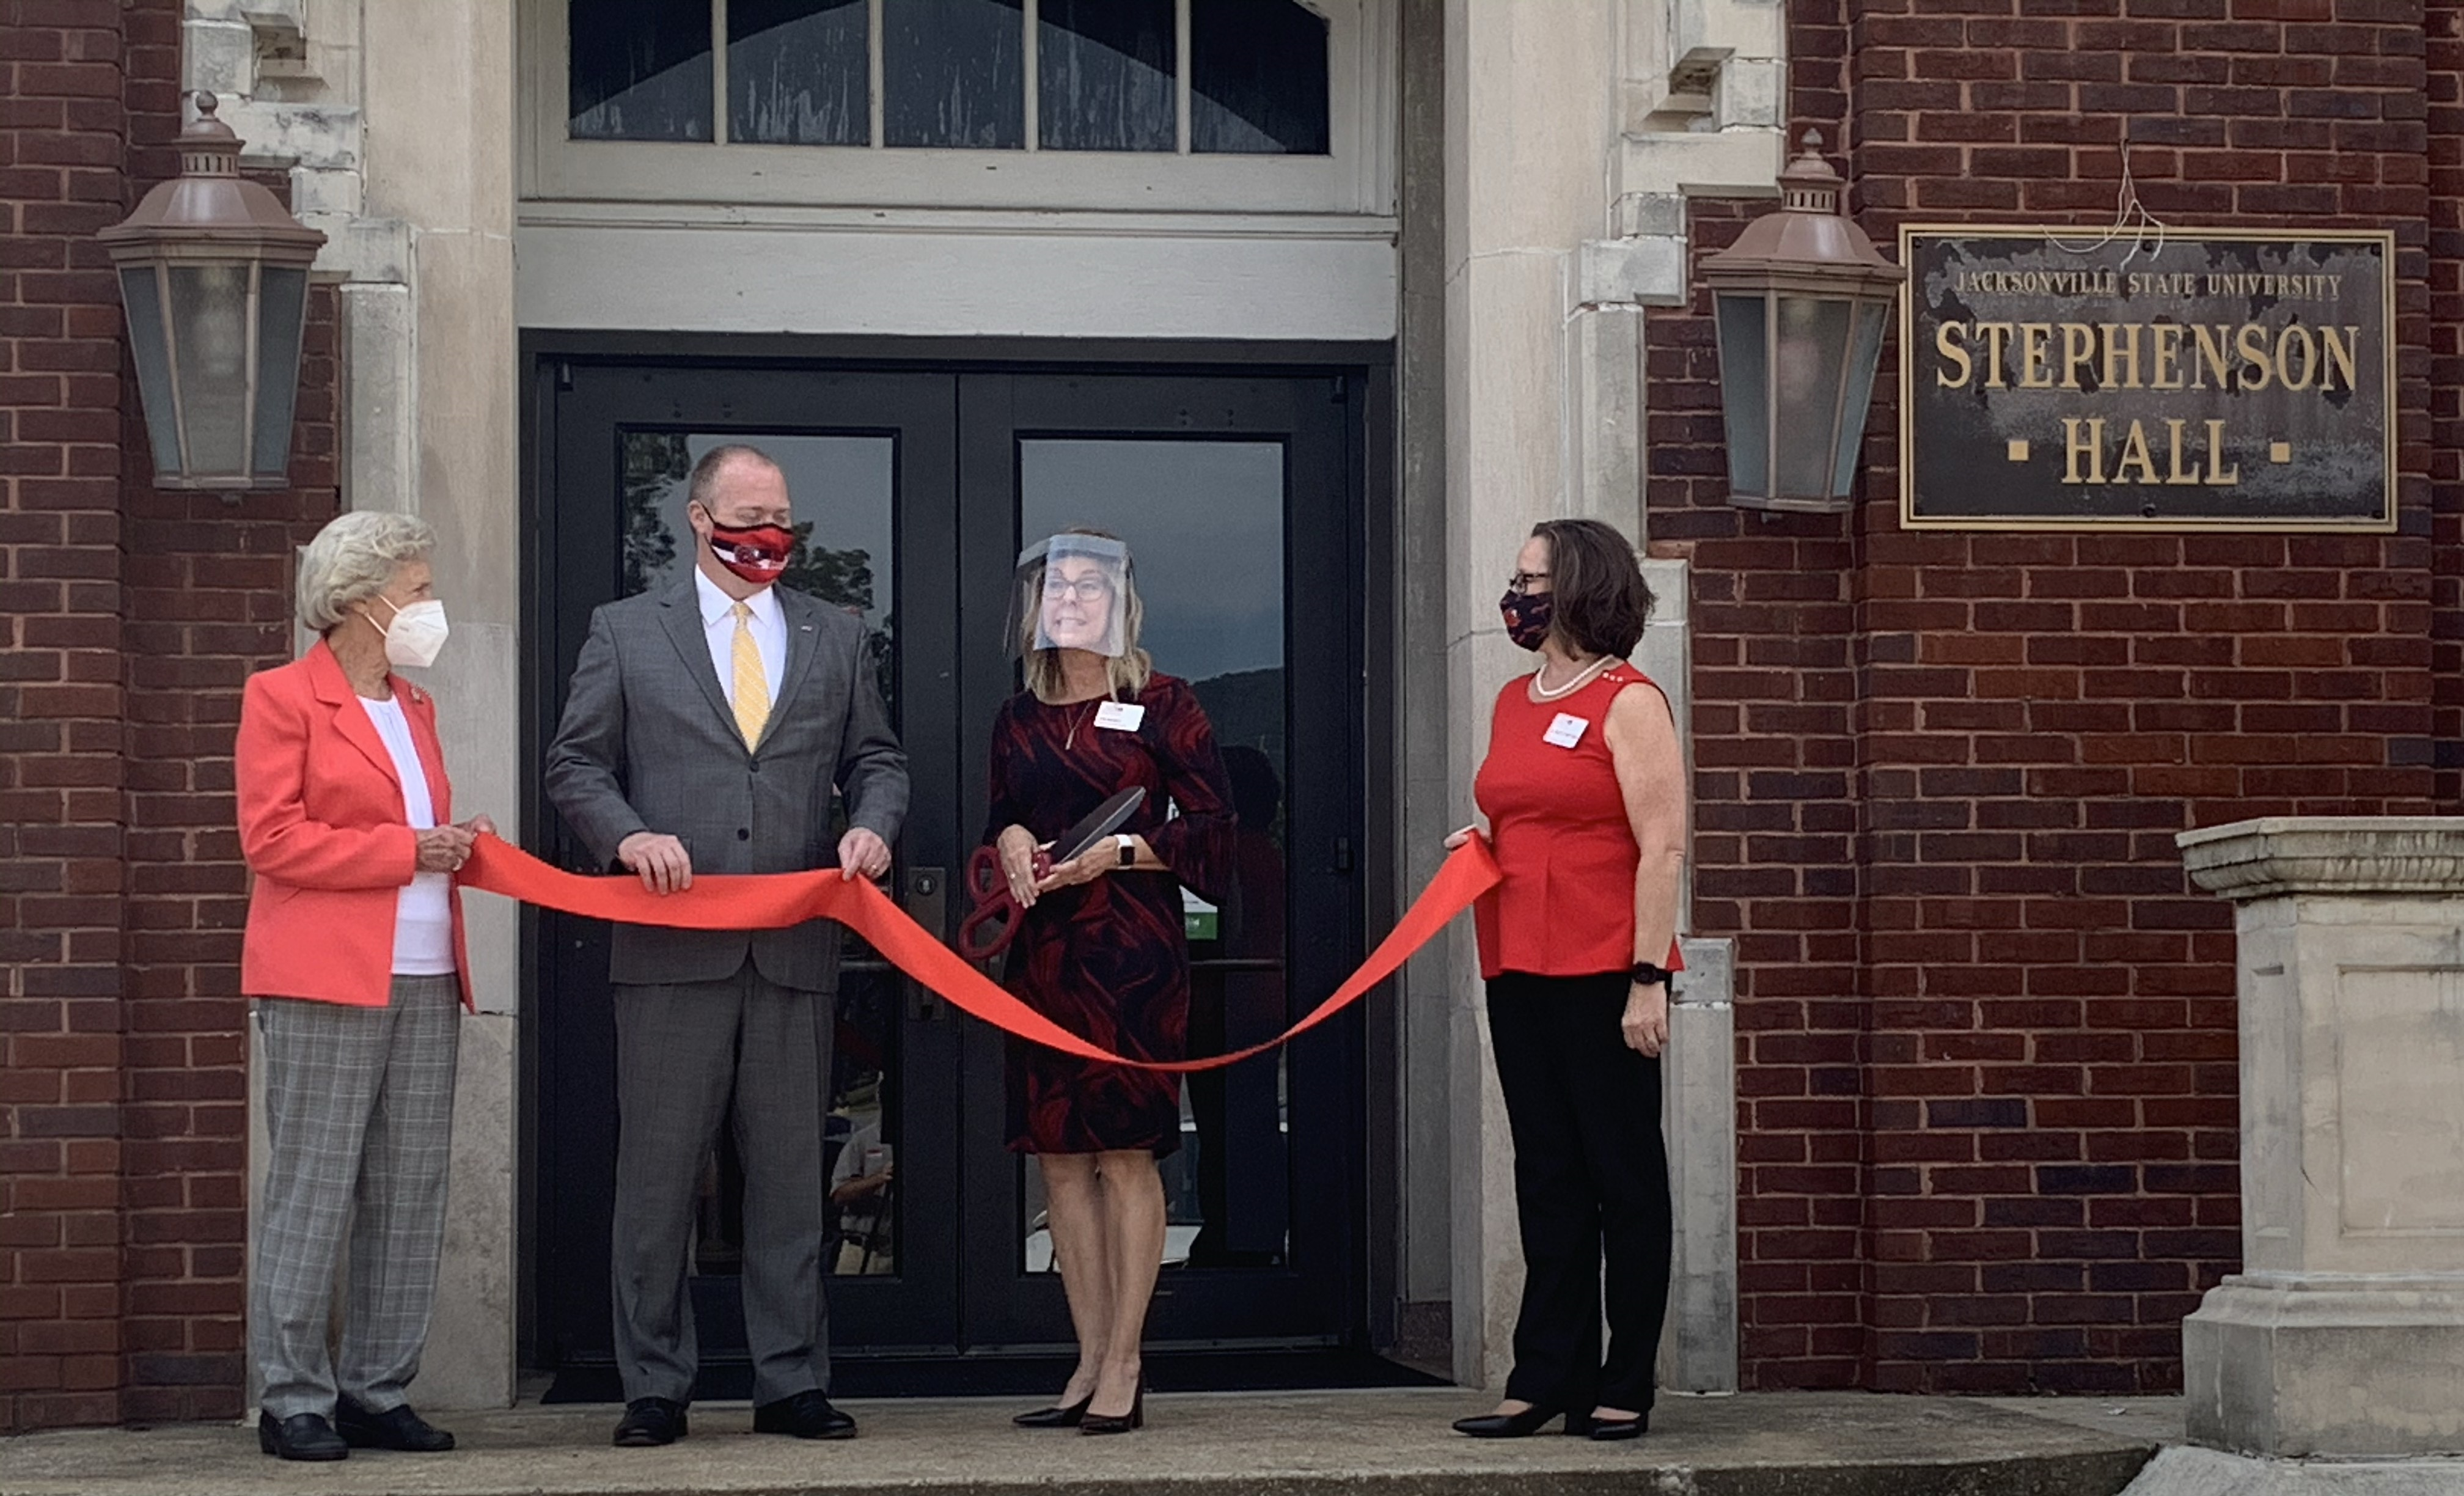 (From left to right): Professor Emeritus Margaret Hope, JSU President Don Killingsworth, Head of the Department of Kinesiology Gina Mabrey and Dean of the School of Health Professions and Wellness Tracey Matthews participate in a ribbon-cutting ceremony for newly-renovated Stephenson Hall. (Coley Birchfield/The Chanticleer)